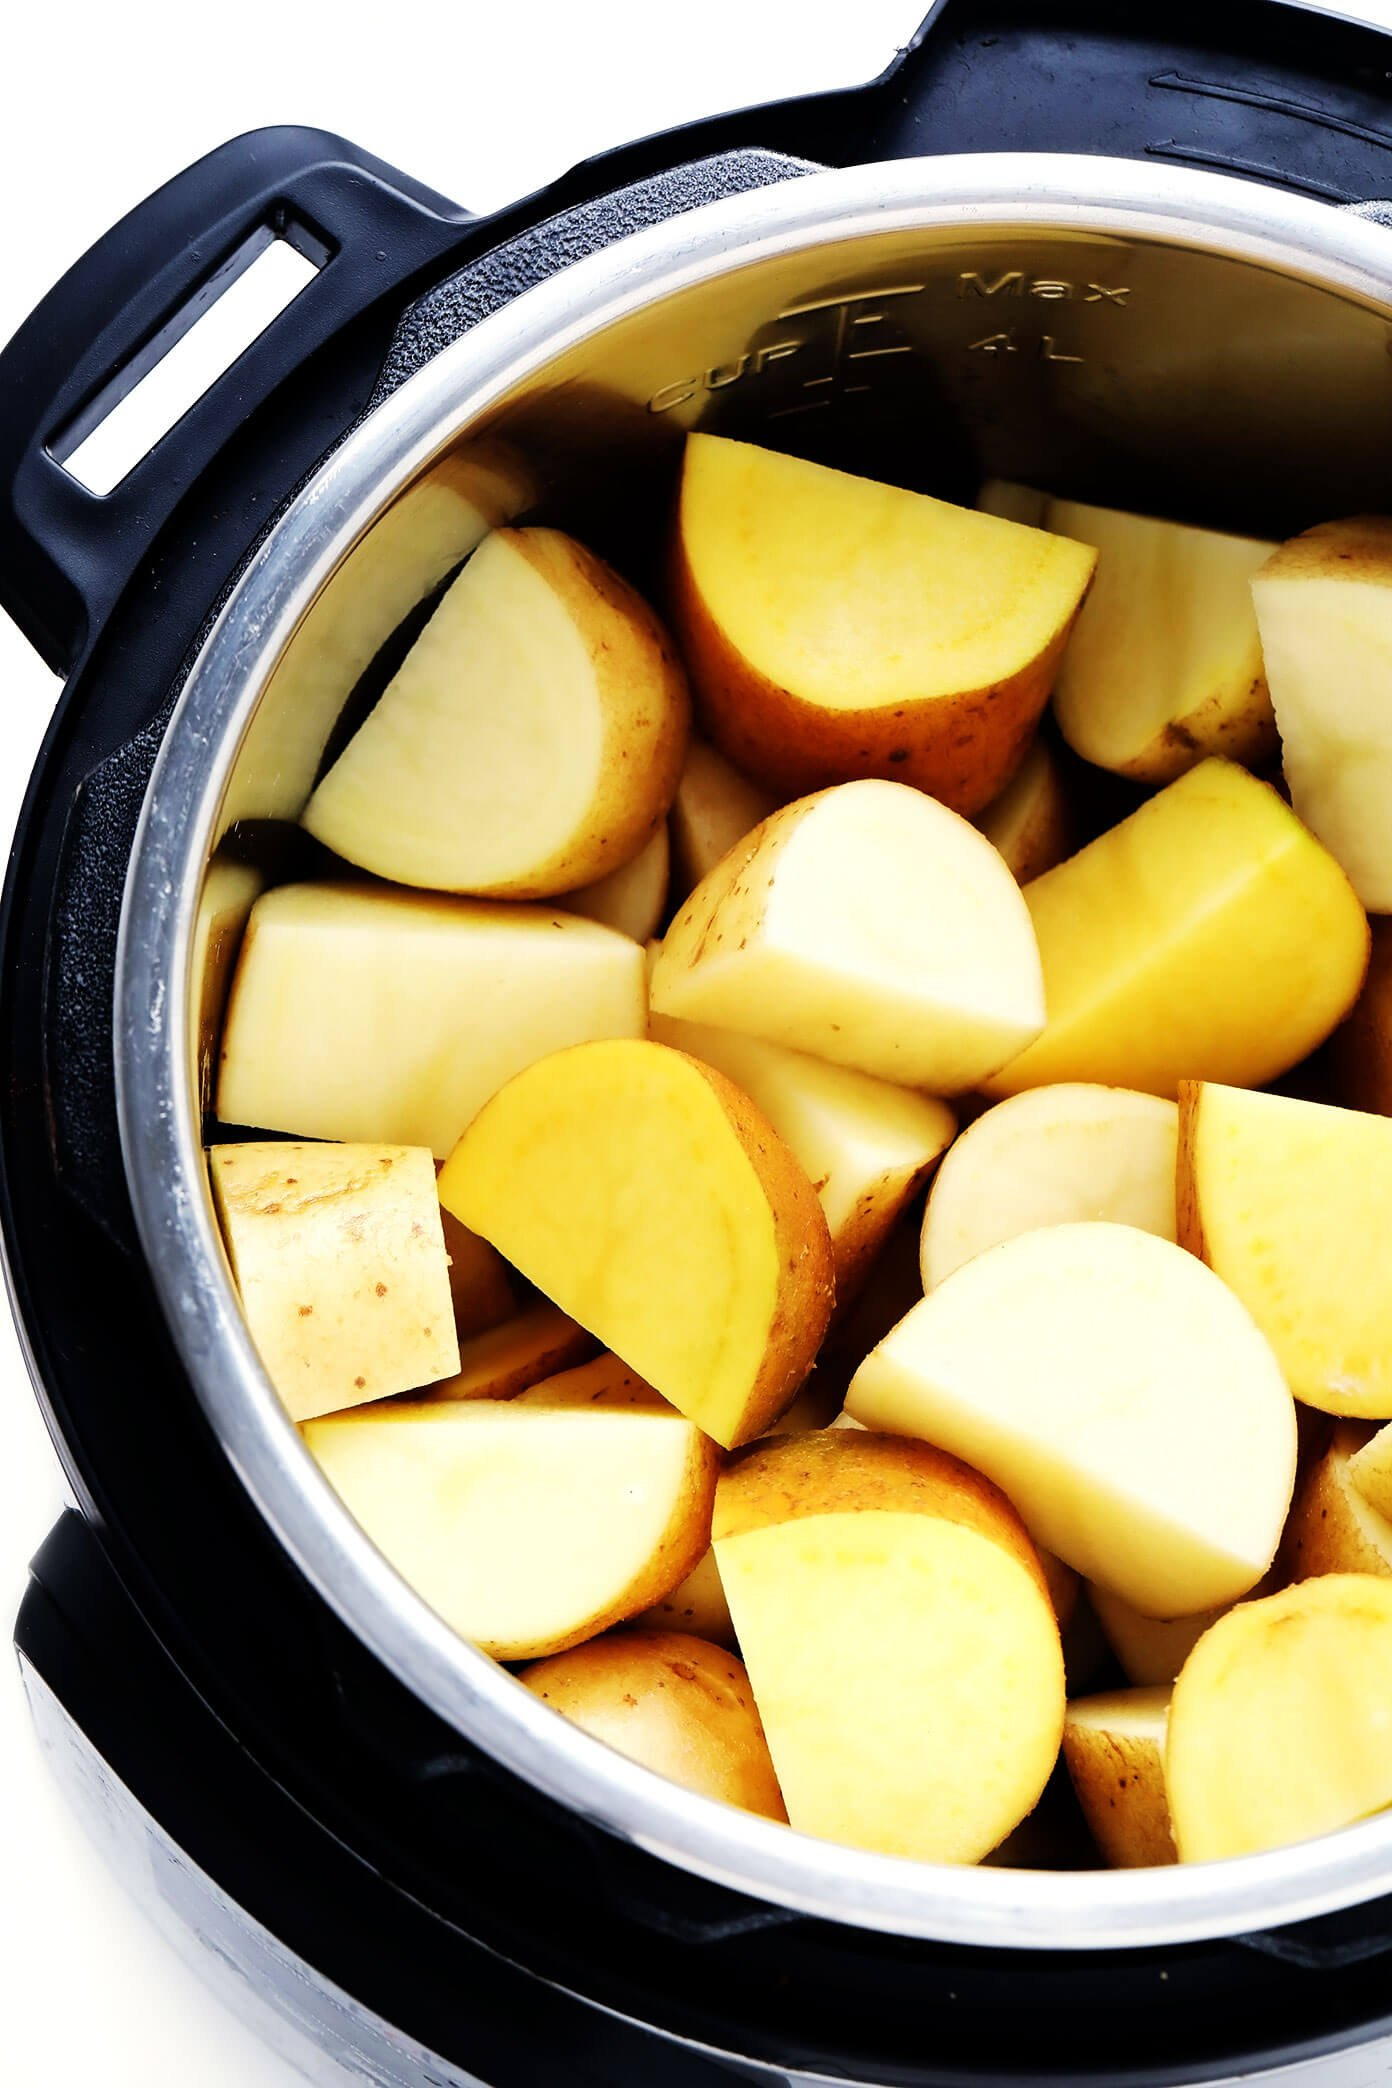 Yukon Gold and Russet Potatoes In The Instant Pot